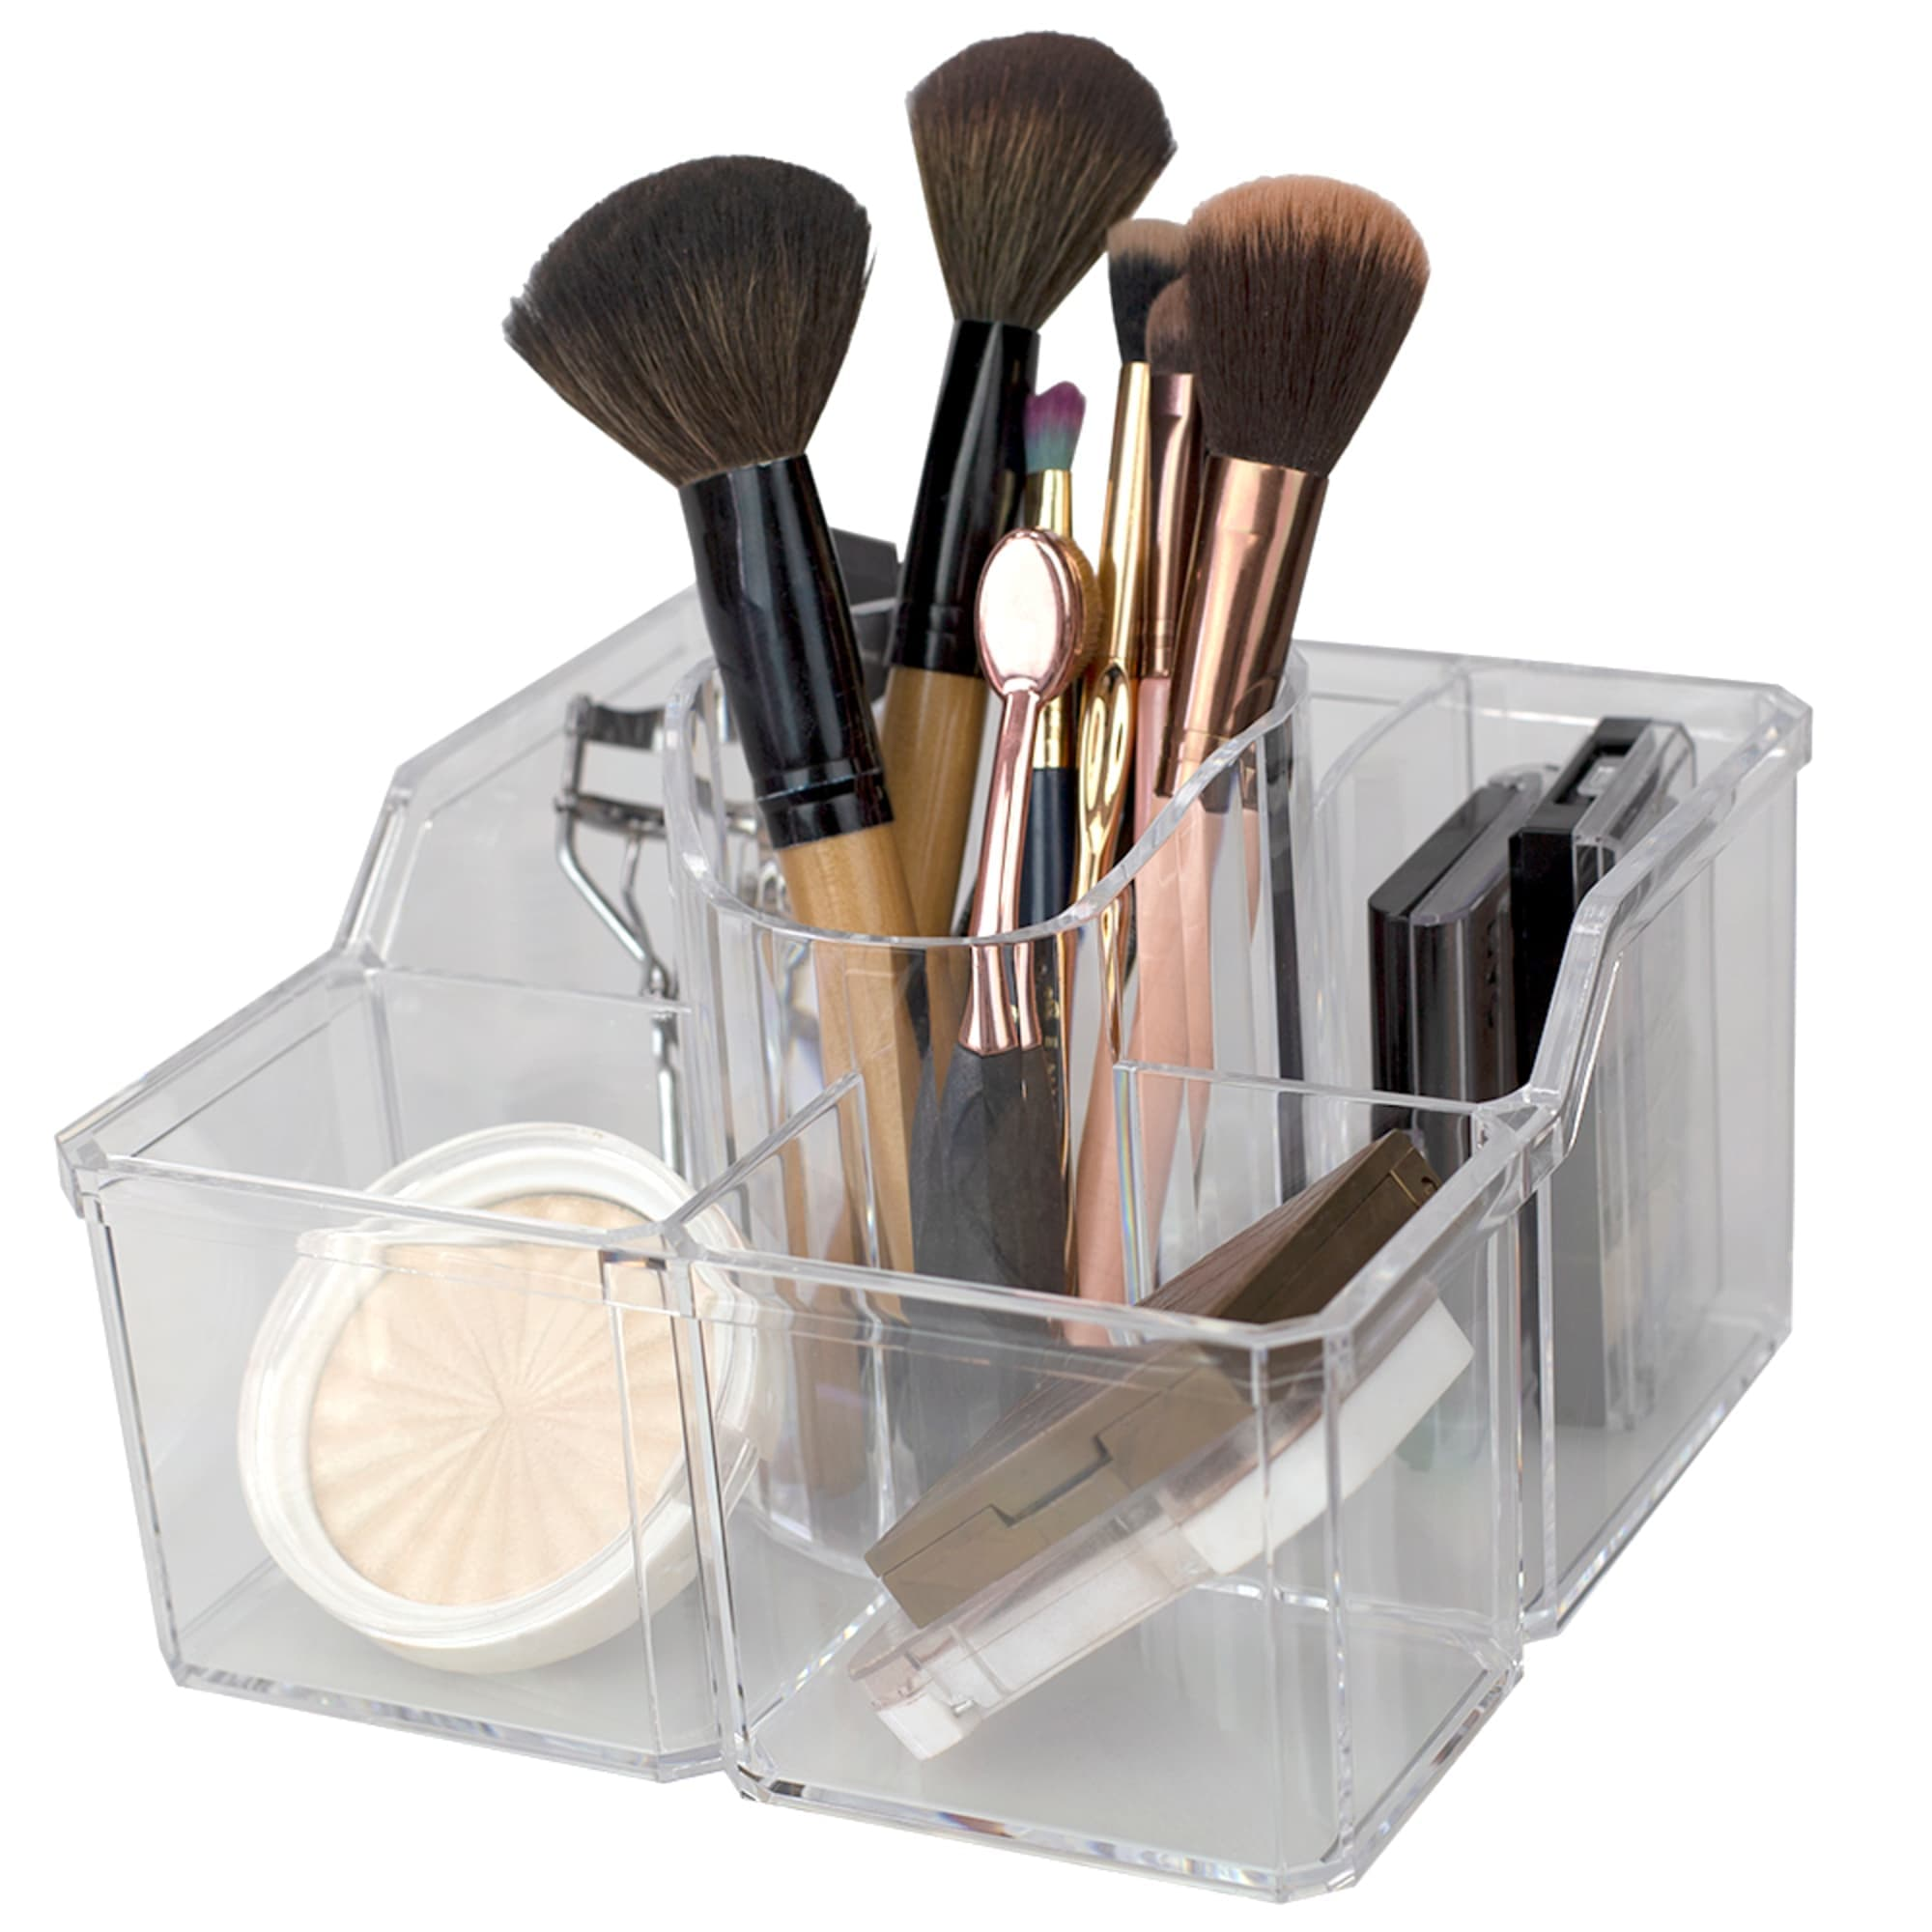 4 Divided Compartment Extra Large Capacity Makeup Cosmetic Holder Storage Organizer, Clear